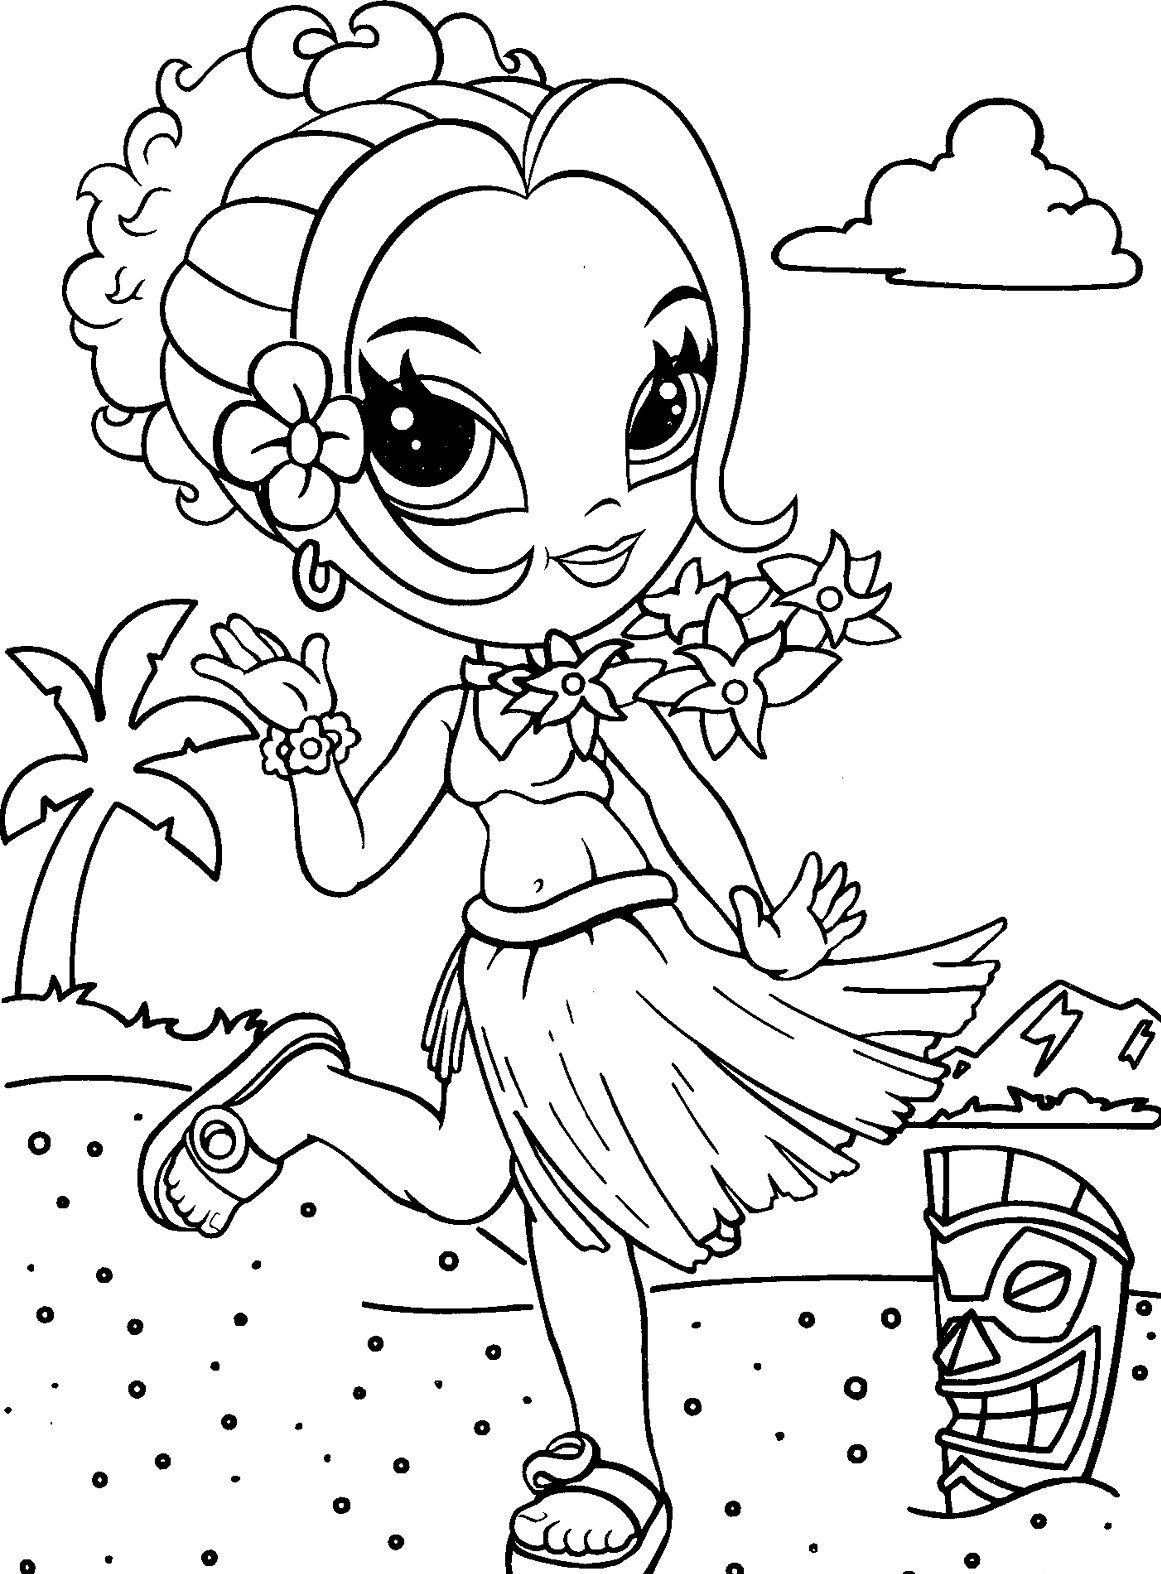 lisa frank coloring pages to download and print for free - Coloring Pages Girls Print